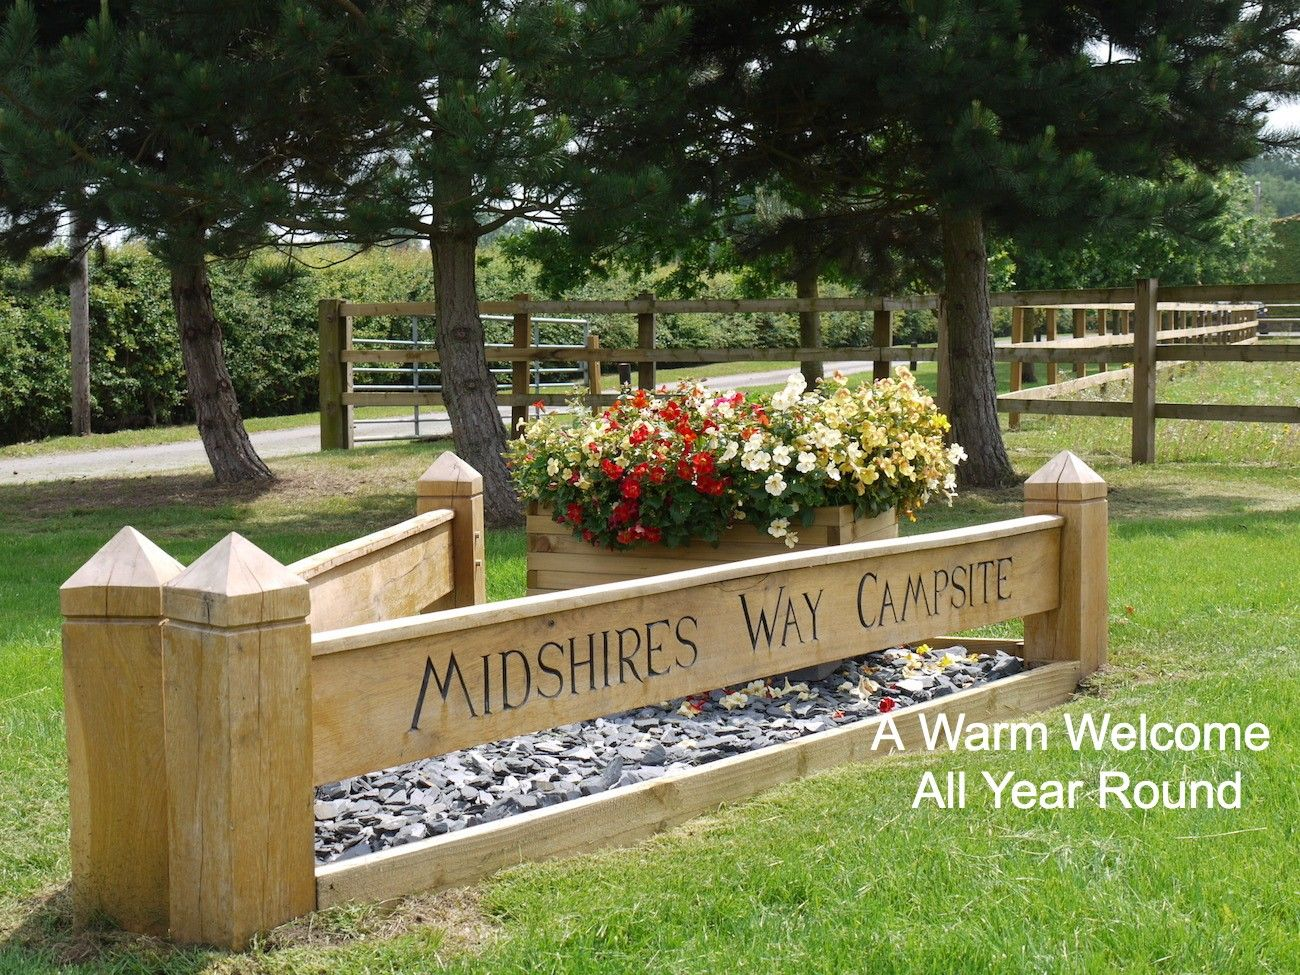 midshires-campsite-entrance-caption (1)